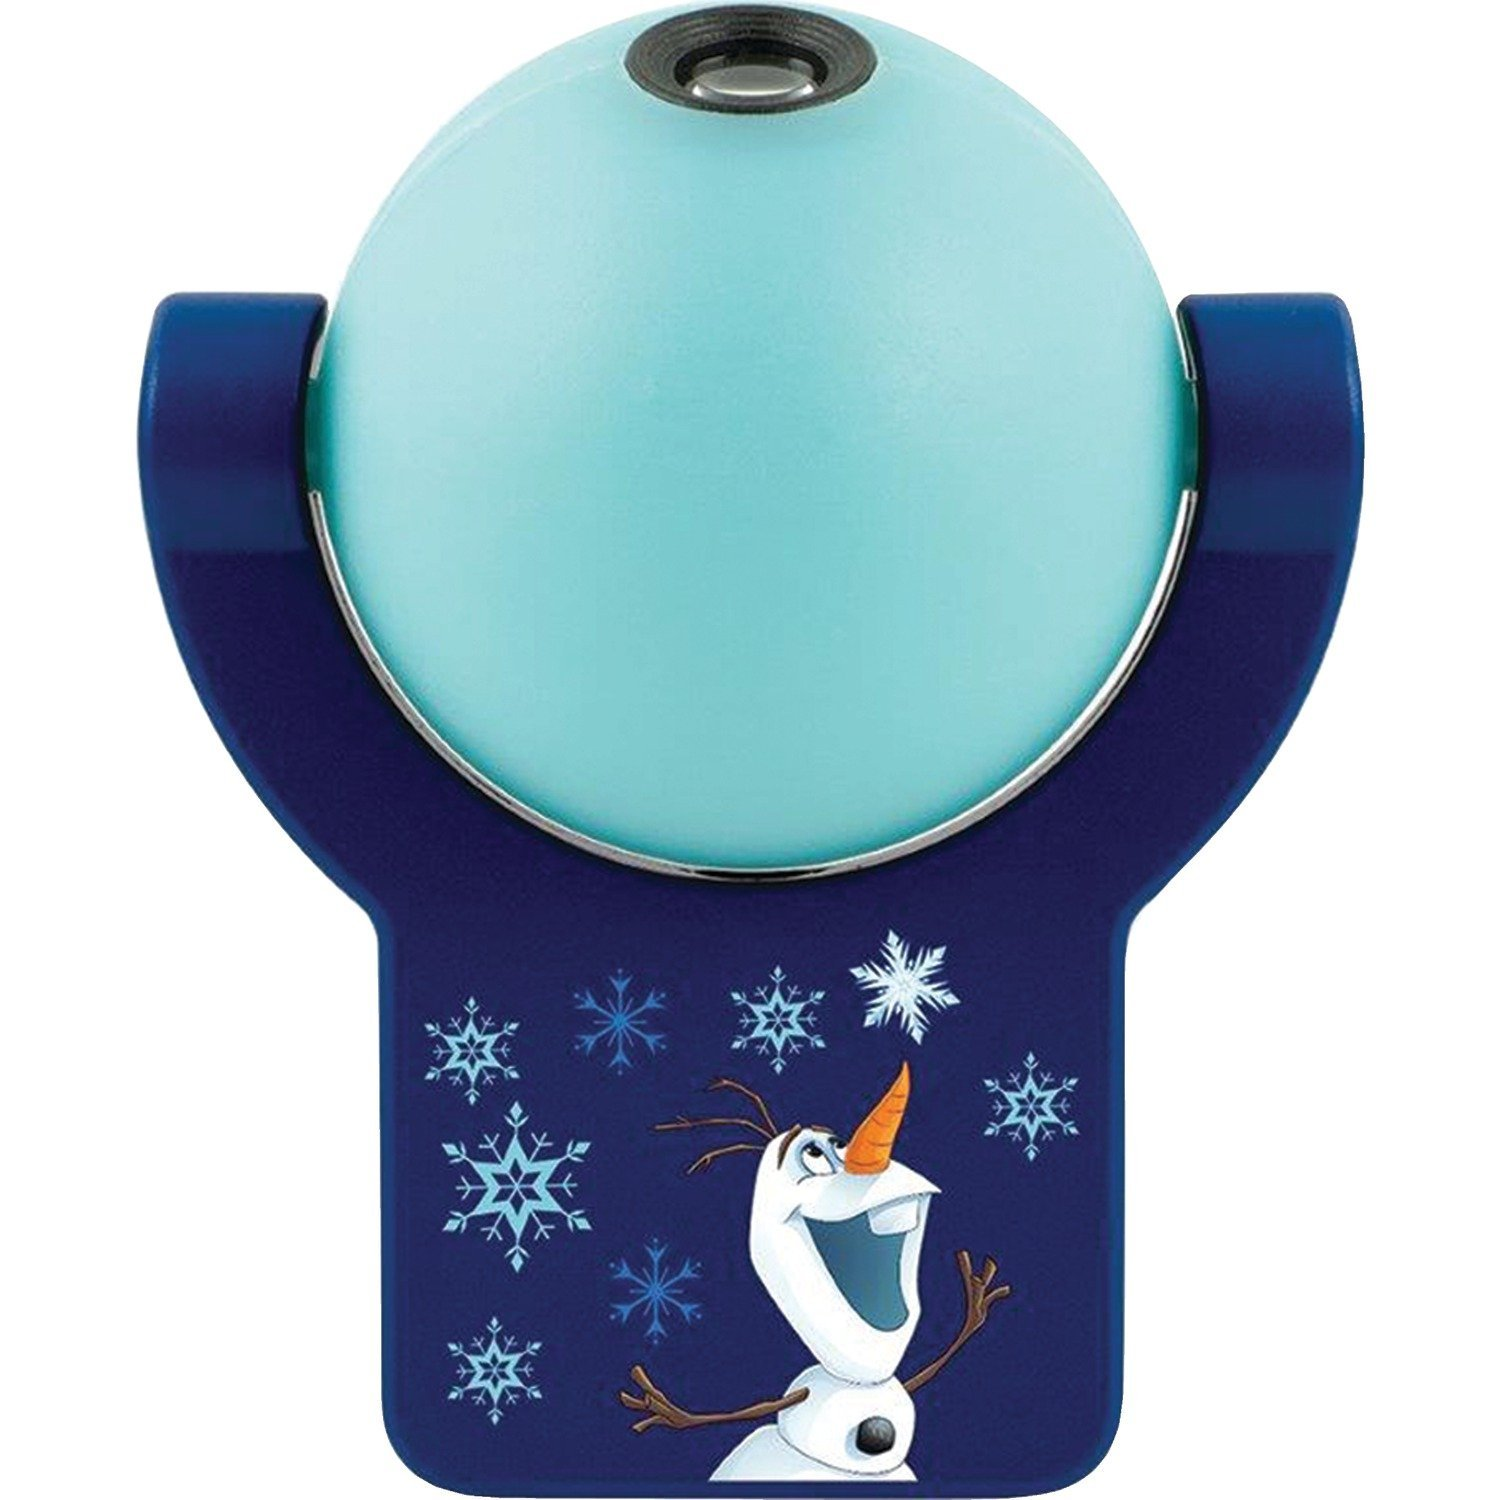 Projectables 29812 Frozen LED Plug-in Night, Soft Blue Glow, Light Sensing, Auto Disney Characters Olaf and Sven, 29811